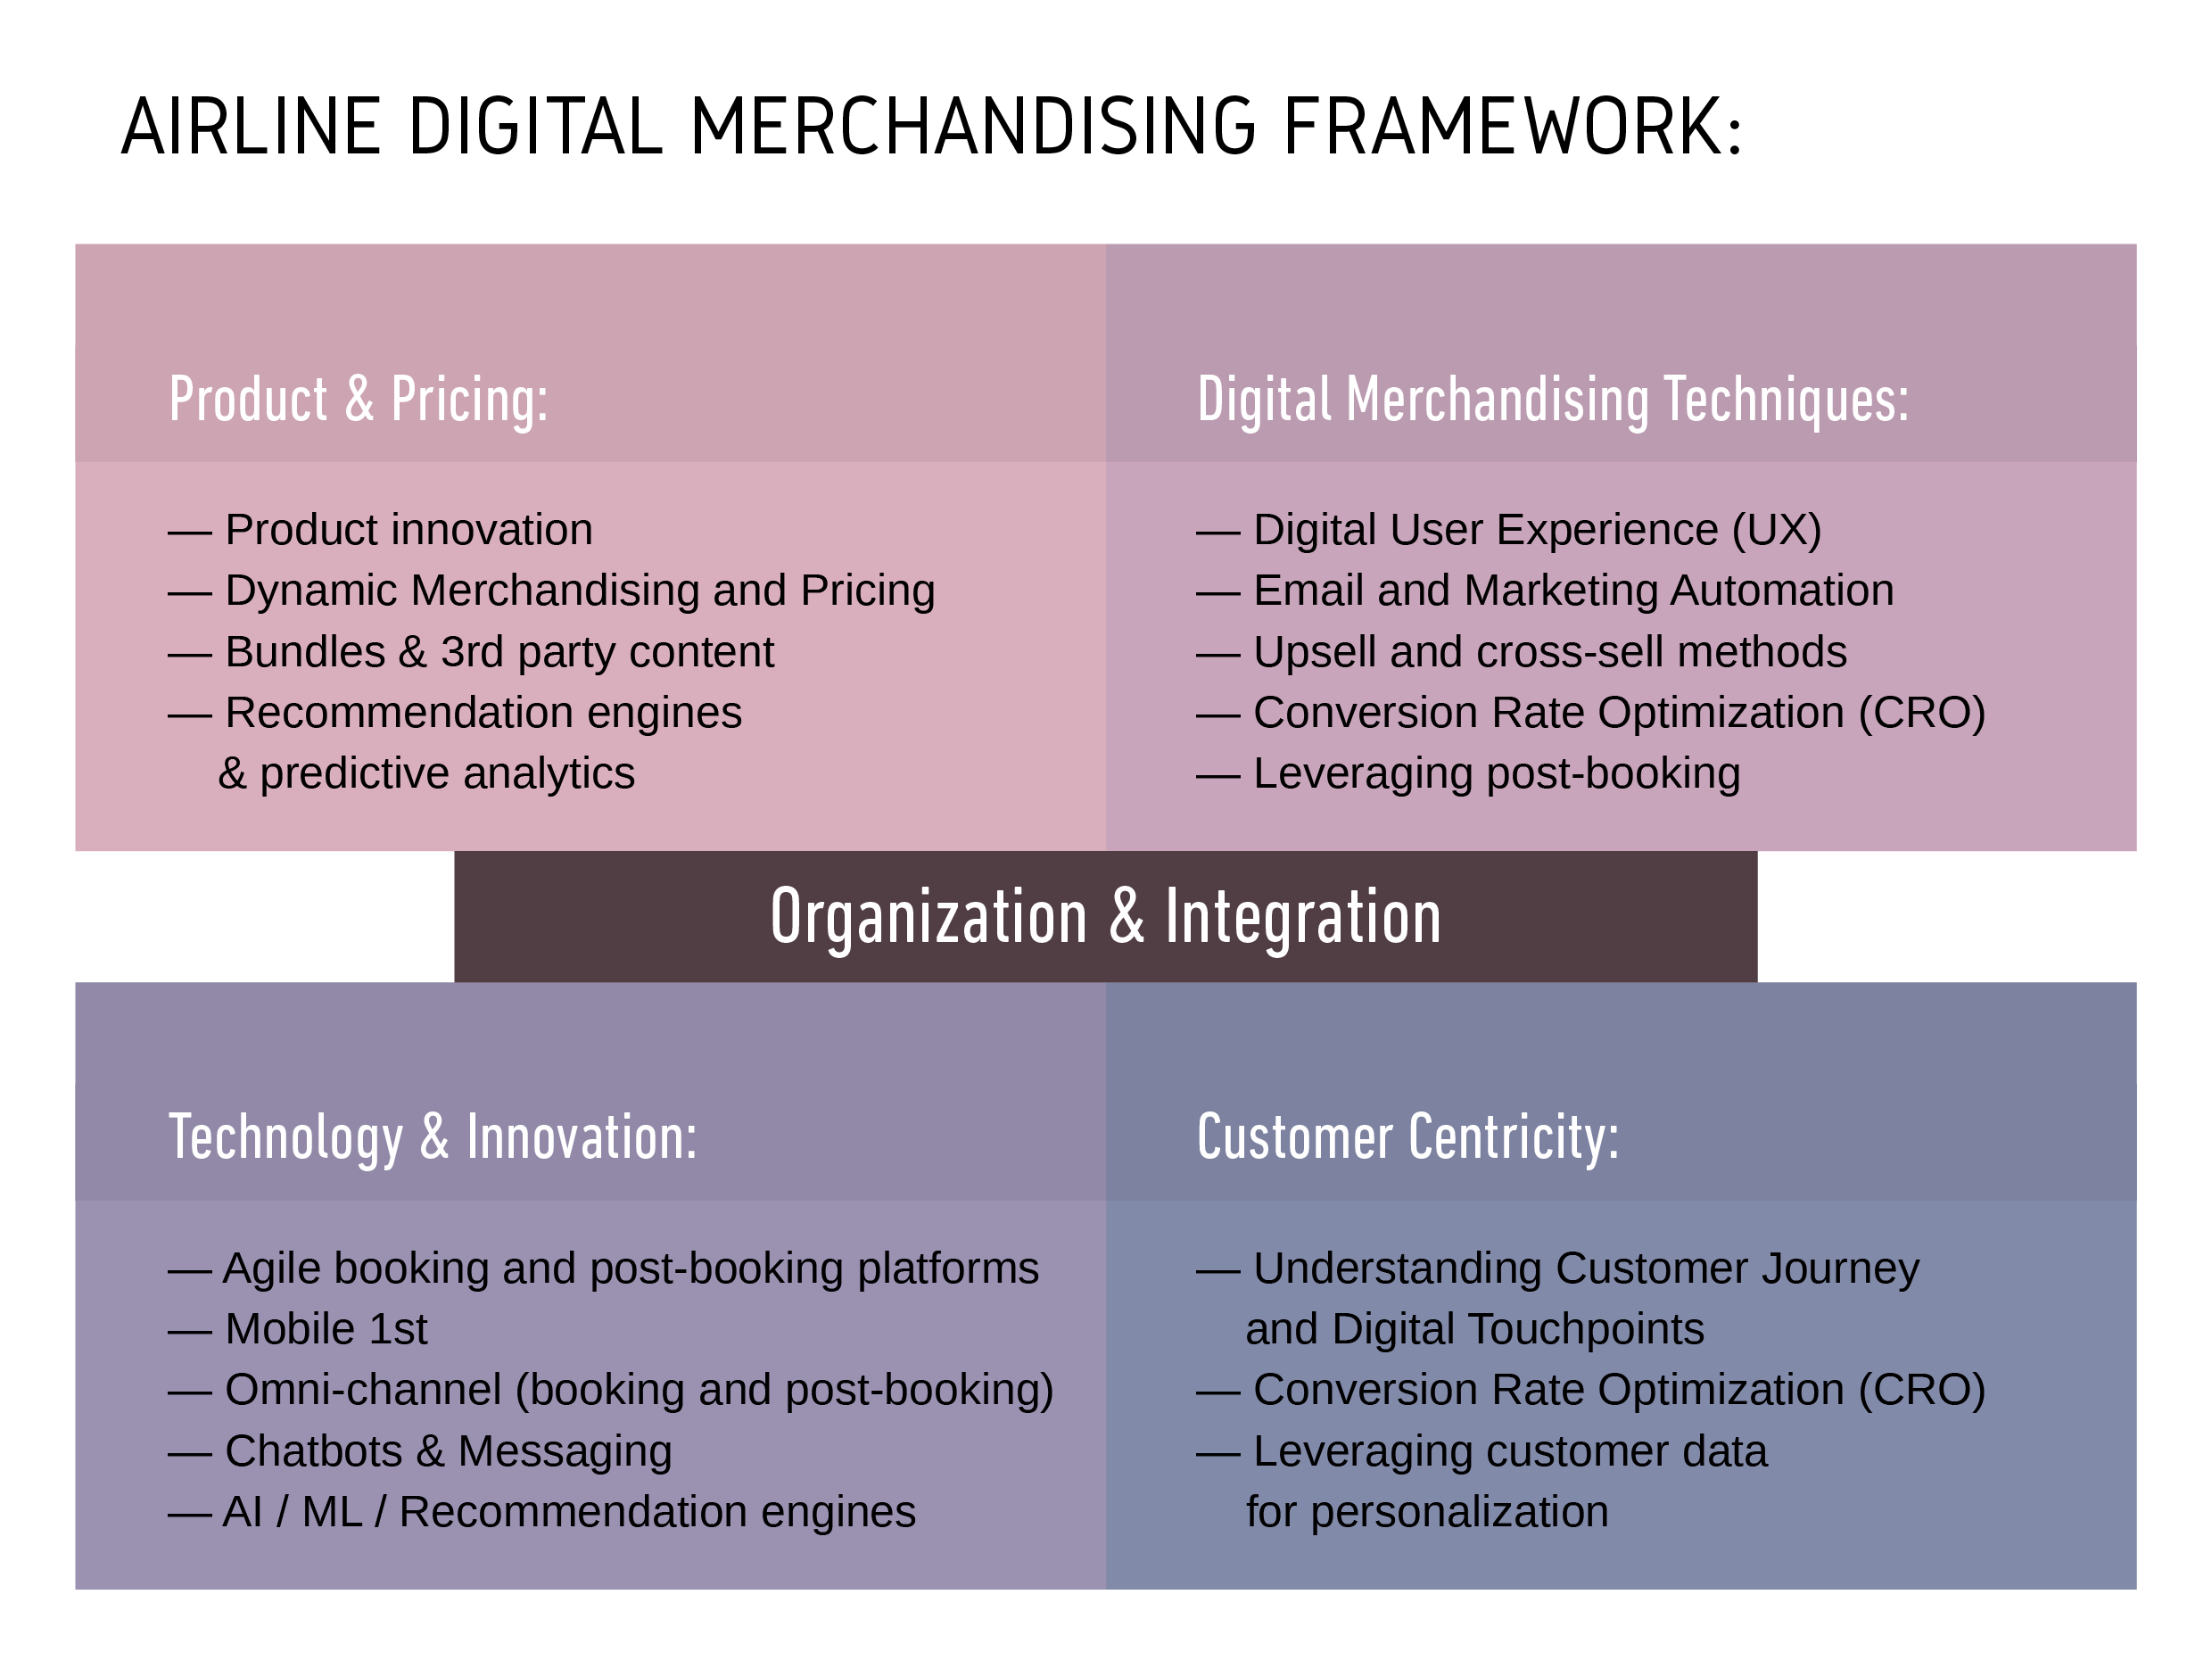 Airline digital merchandising framework, based on 2018 airline ancillary survey, research and results